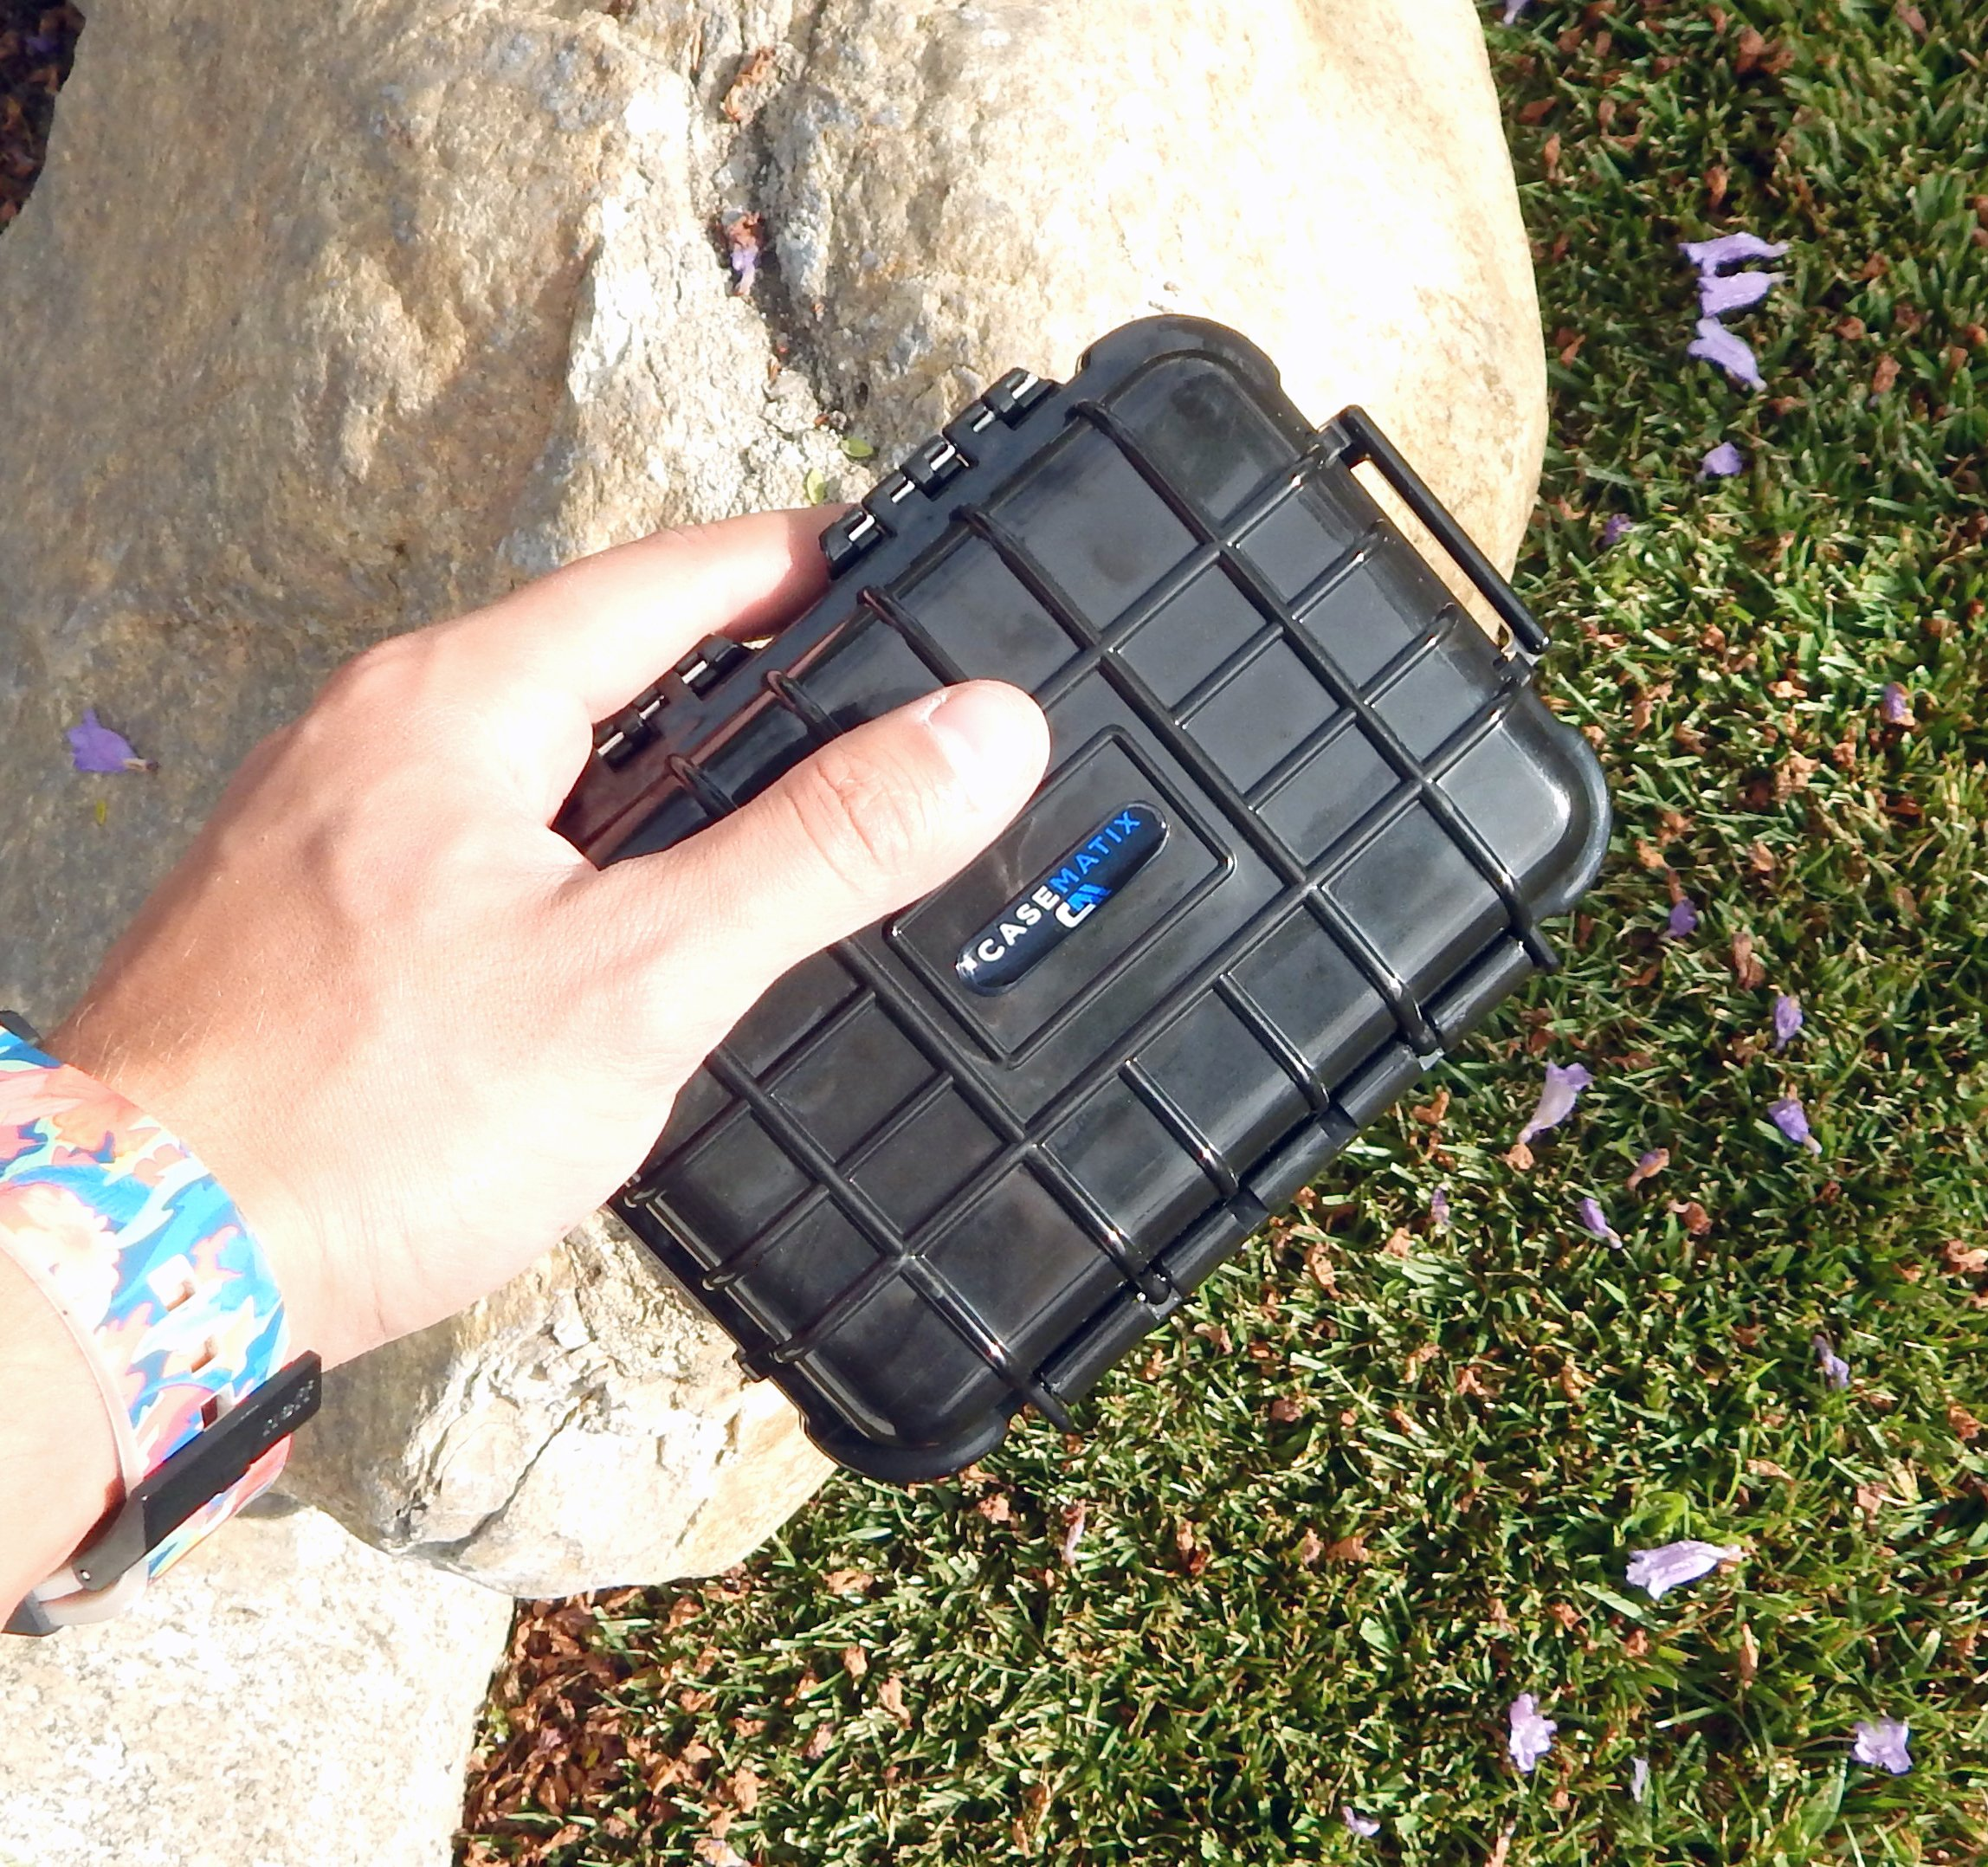 CASEMATIX Rugged Portable Printer Case Compatible with Polaroid Mint Printer and Polaroid Mint Pocket Printer Paper - Includes Waterproof CASE ONLY by CASEMATIX (Image #3)